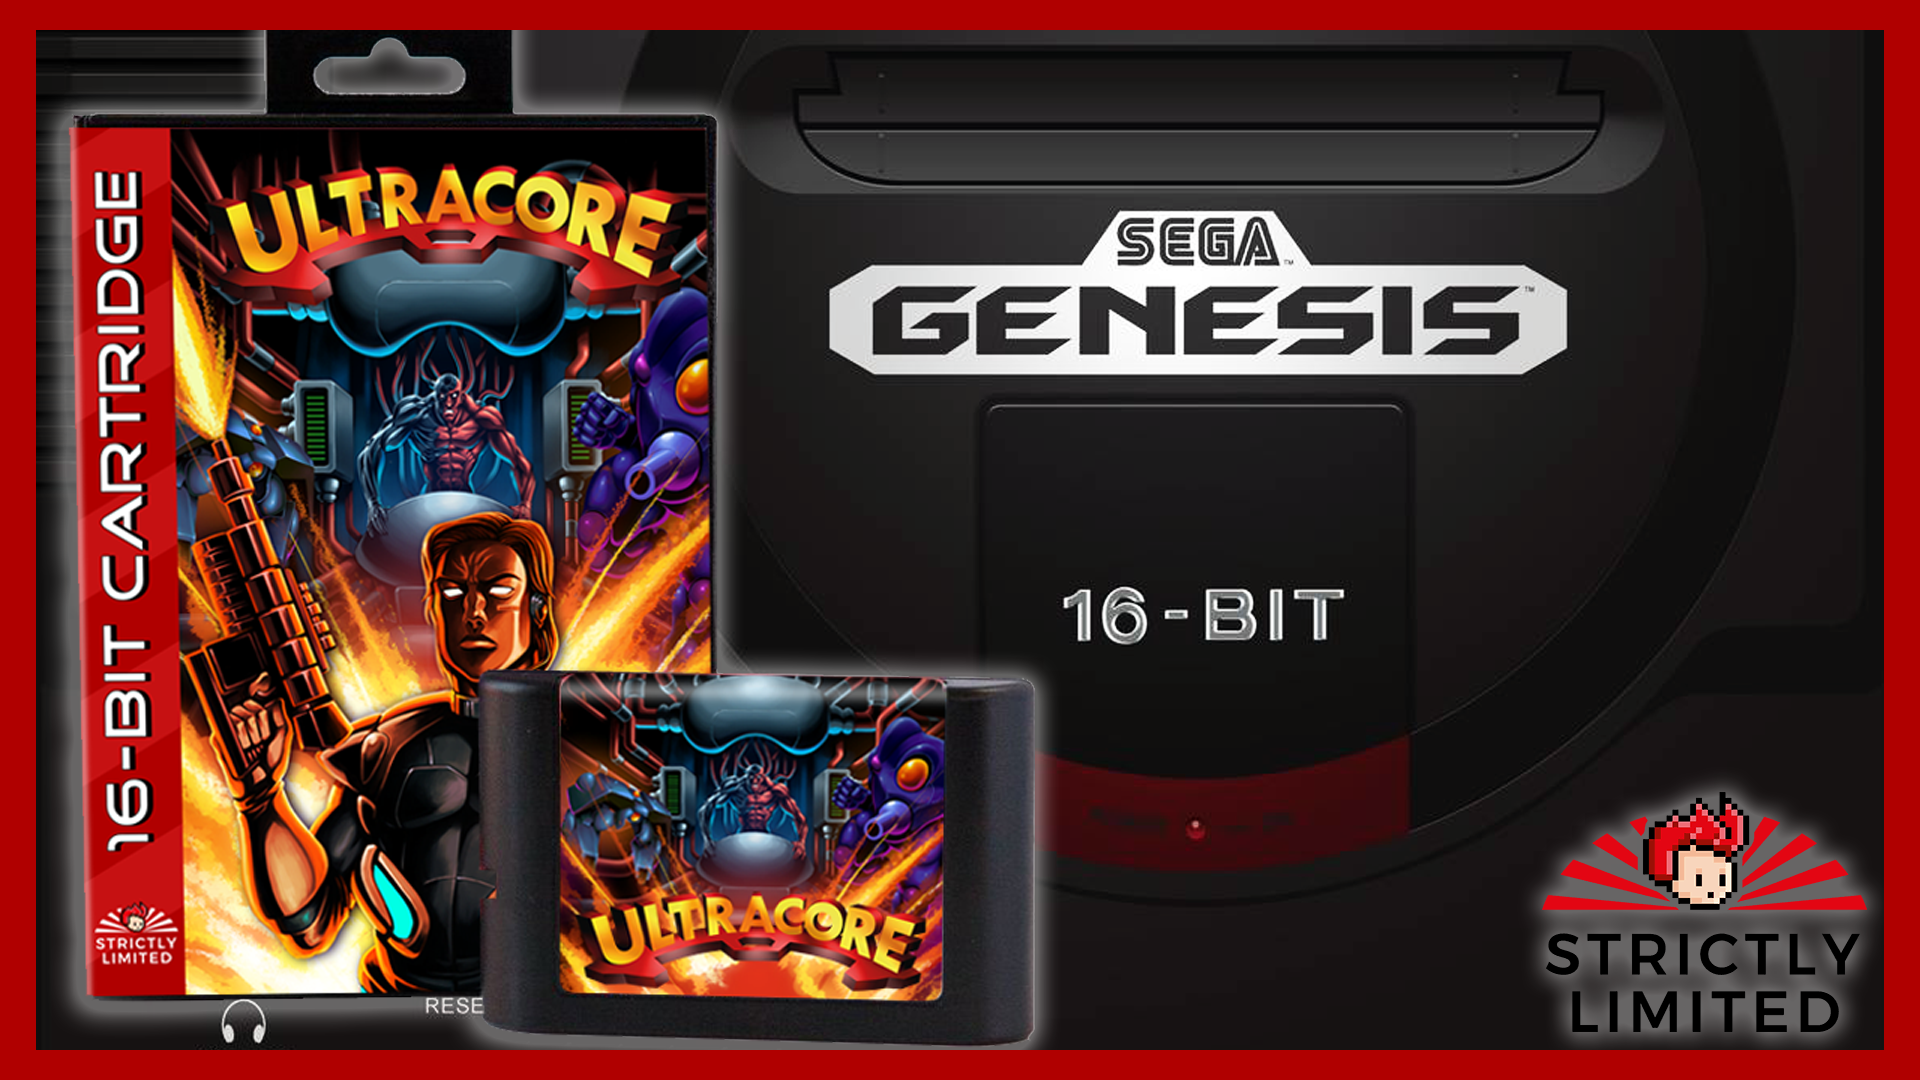 Ultracore Physical Copy for the Genesis / Mega Drive Announced